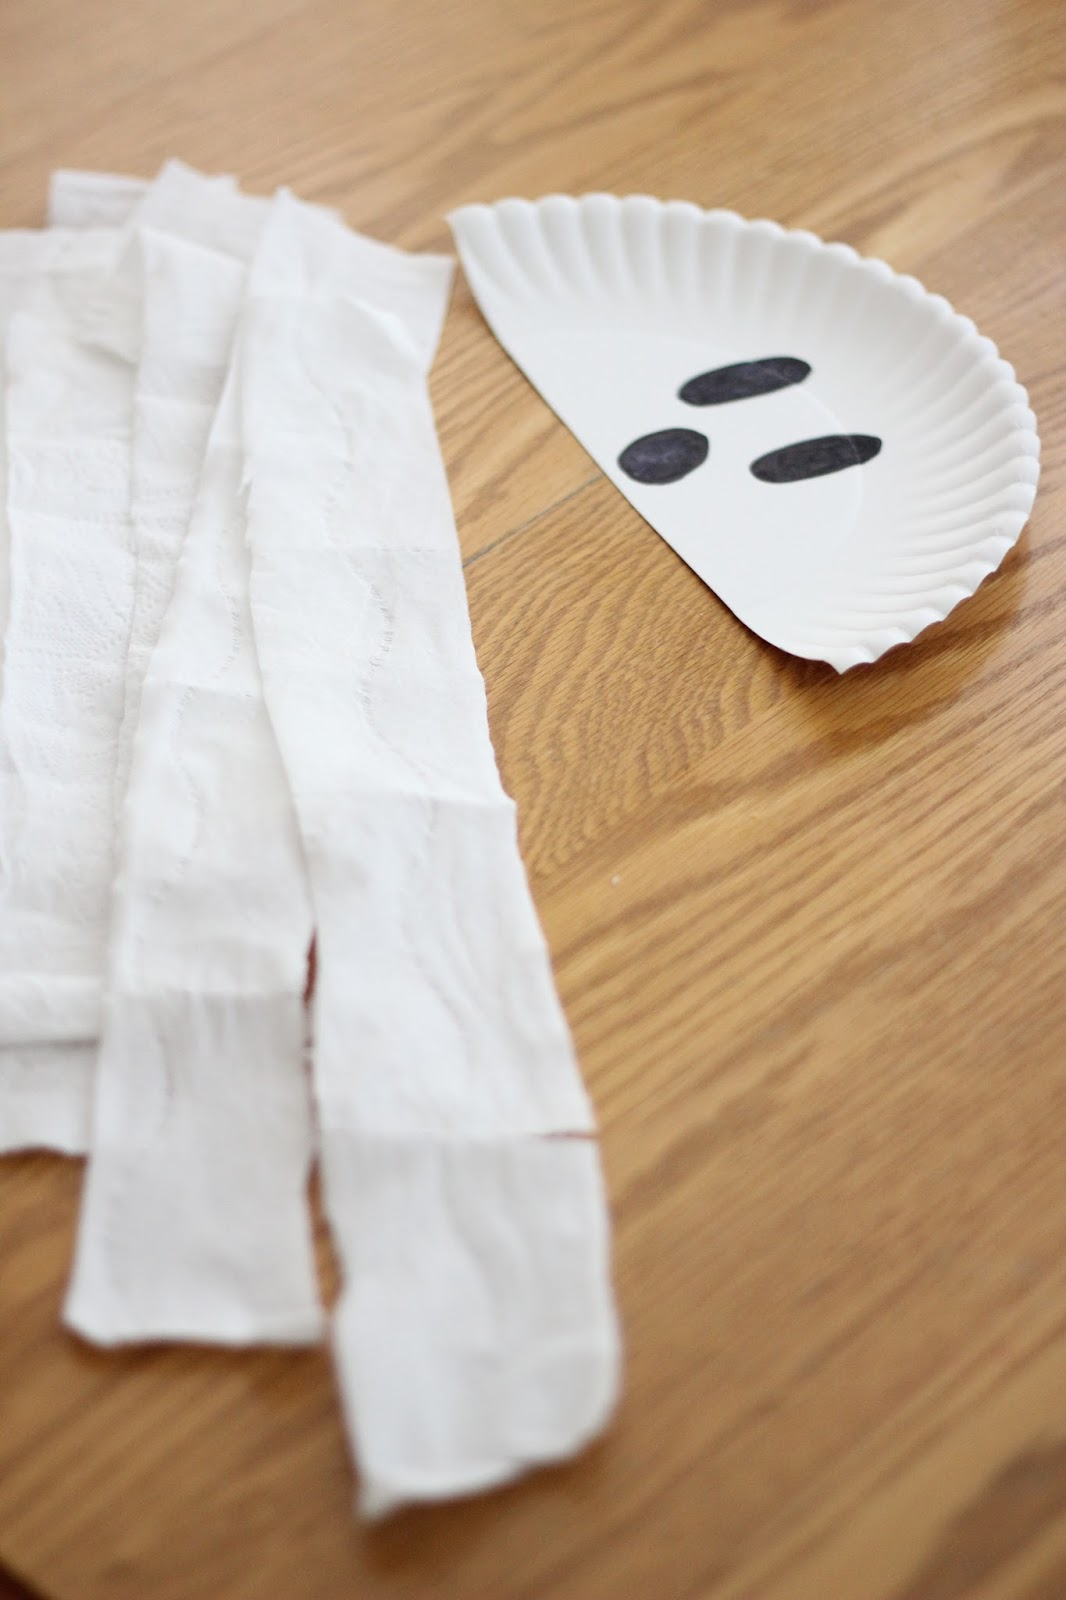 Next draw a ghost face on your paper plate half. & Toddler Approved!: Paper Plate Ghost Craft for Preschoolers